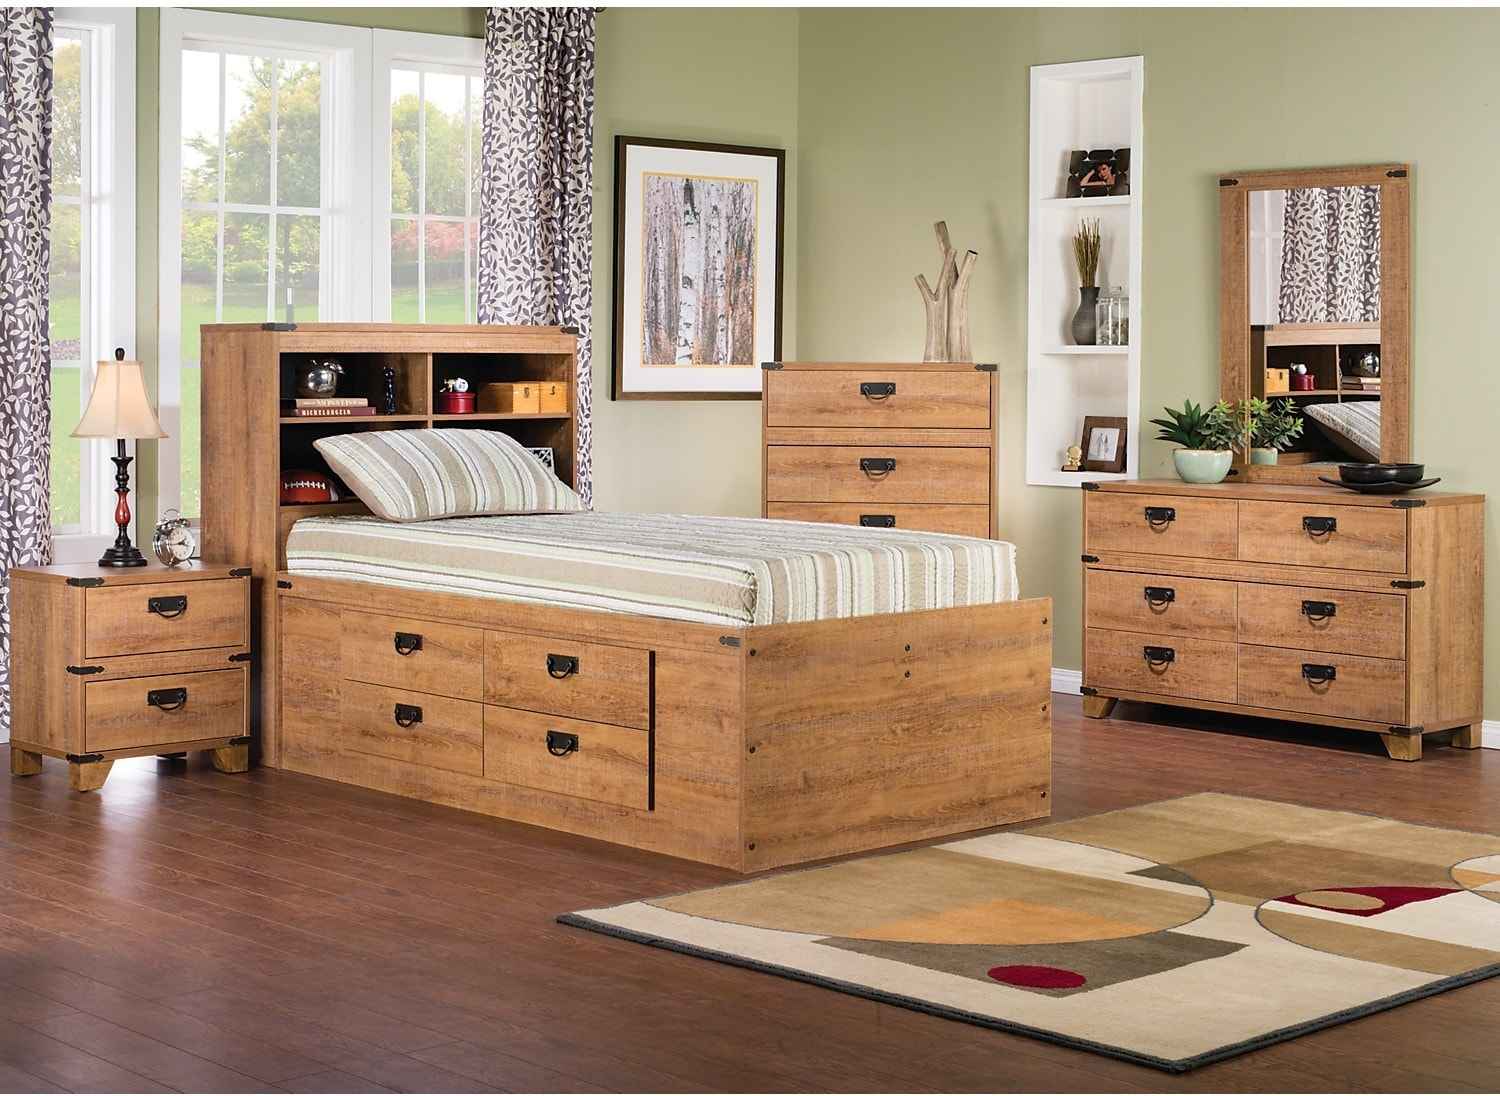 Kids Furniture - Fleetwood 8-Piece Twin Bookcase Storage Bedroom Package